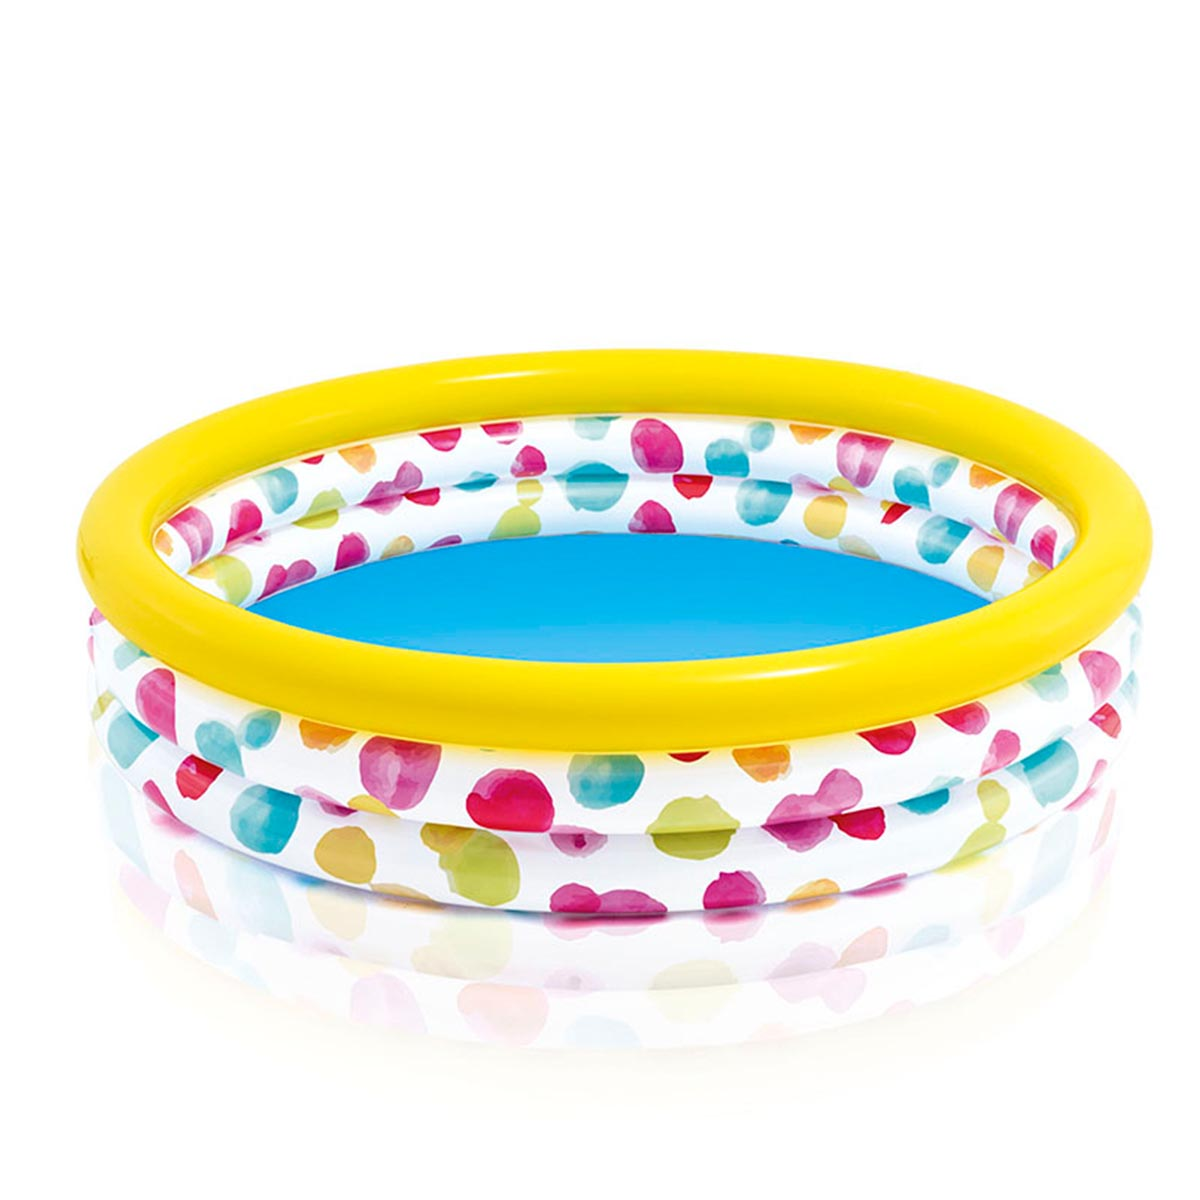 Intex Cool Dots Pool kinderzwembad 147 x 33 cm